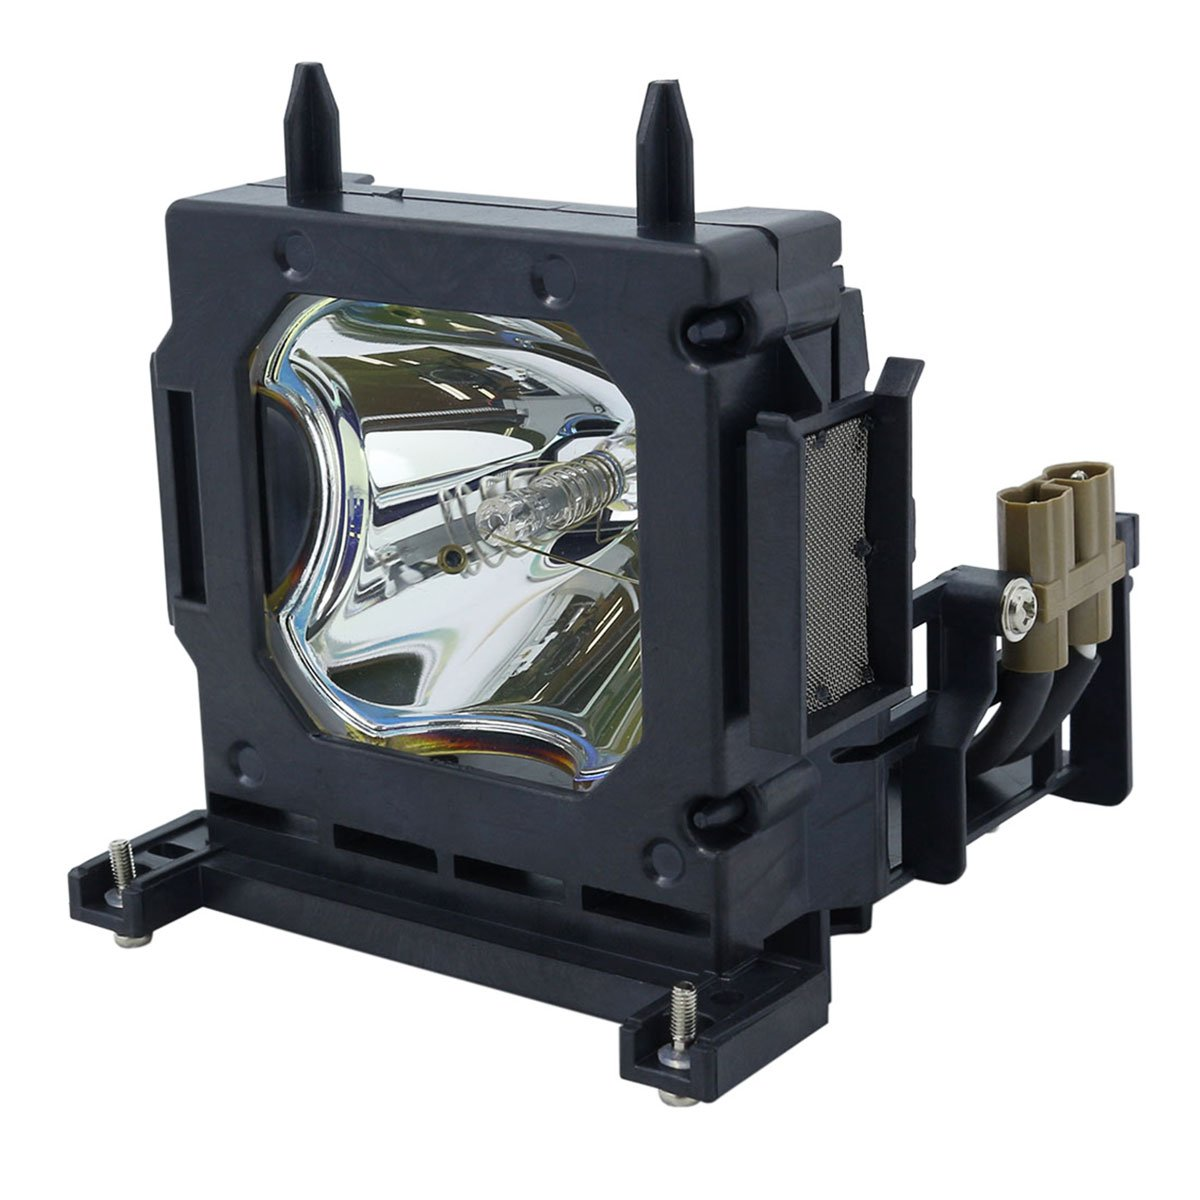 Original Philips Projector Lamp Replacement with Housing for Sony LMP-H210